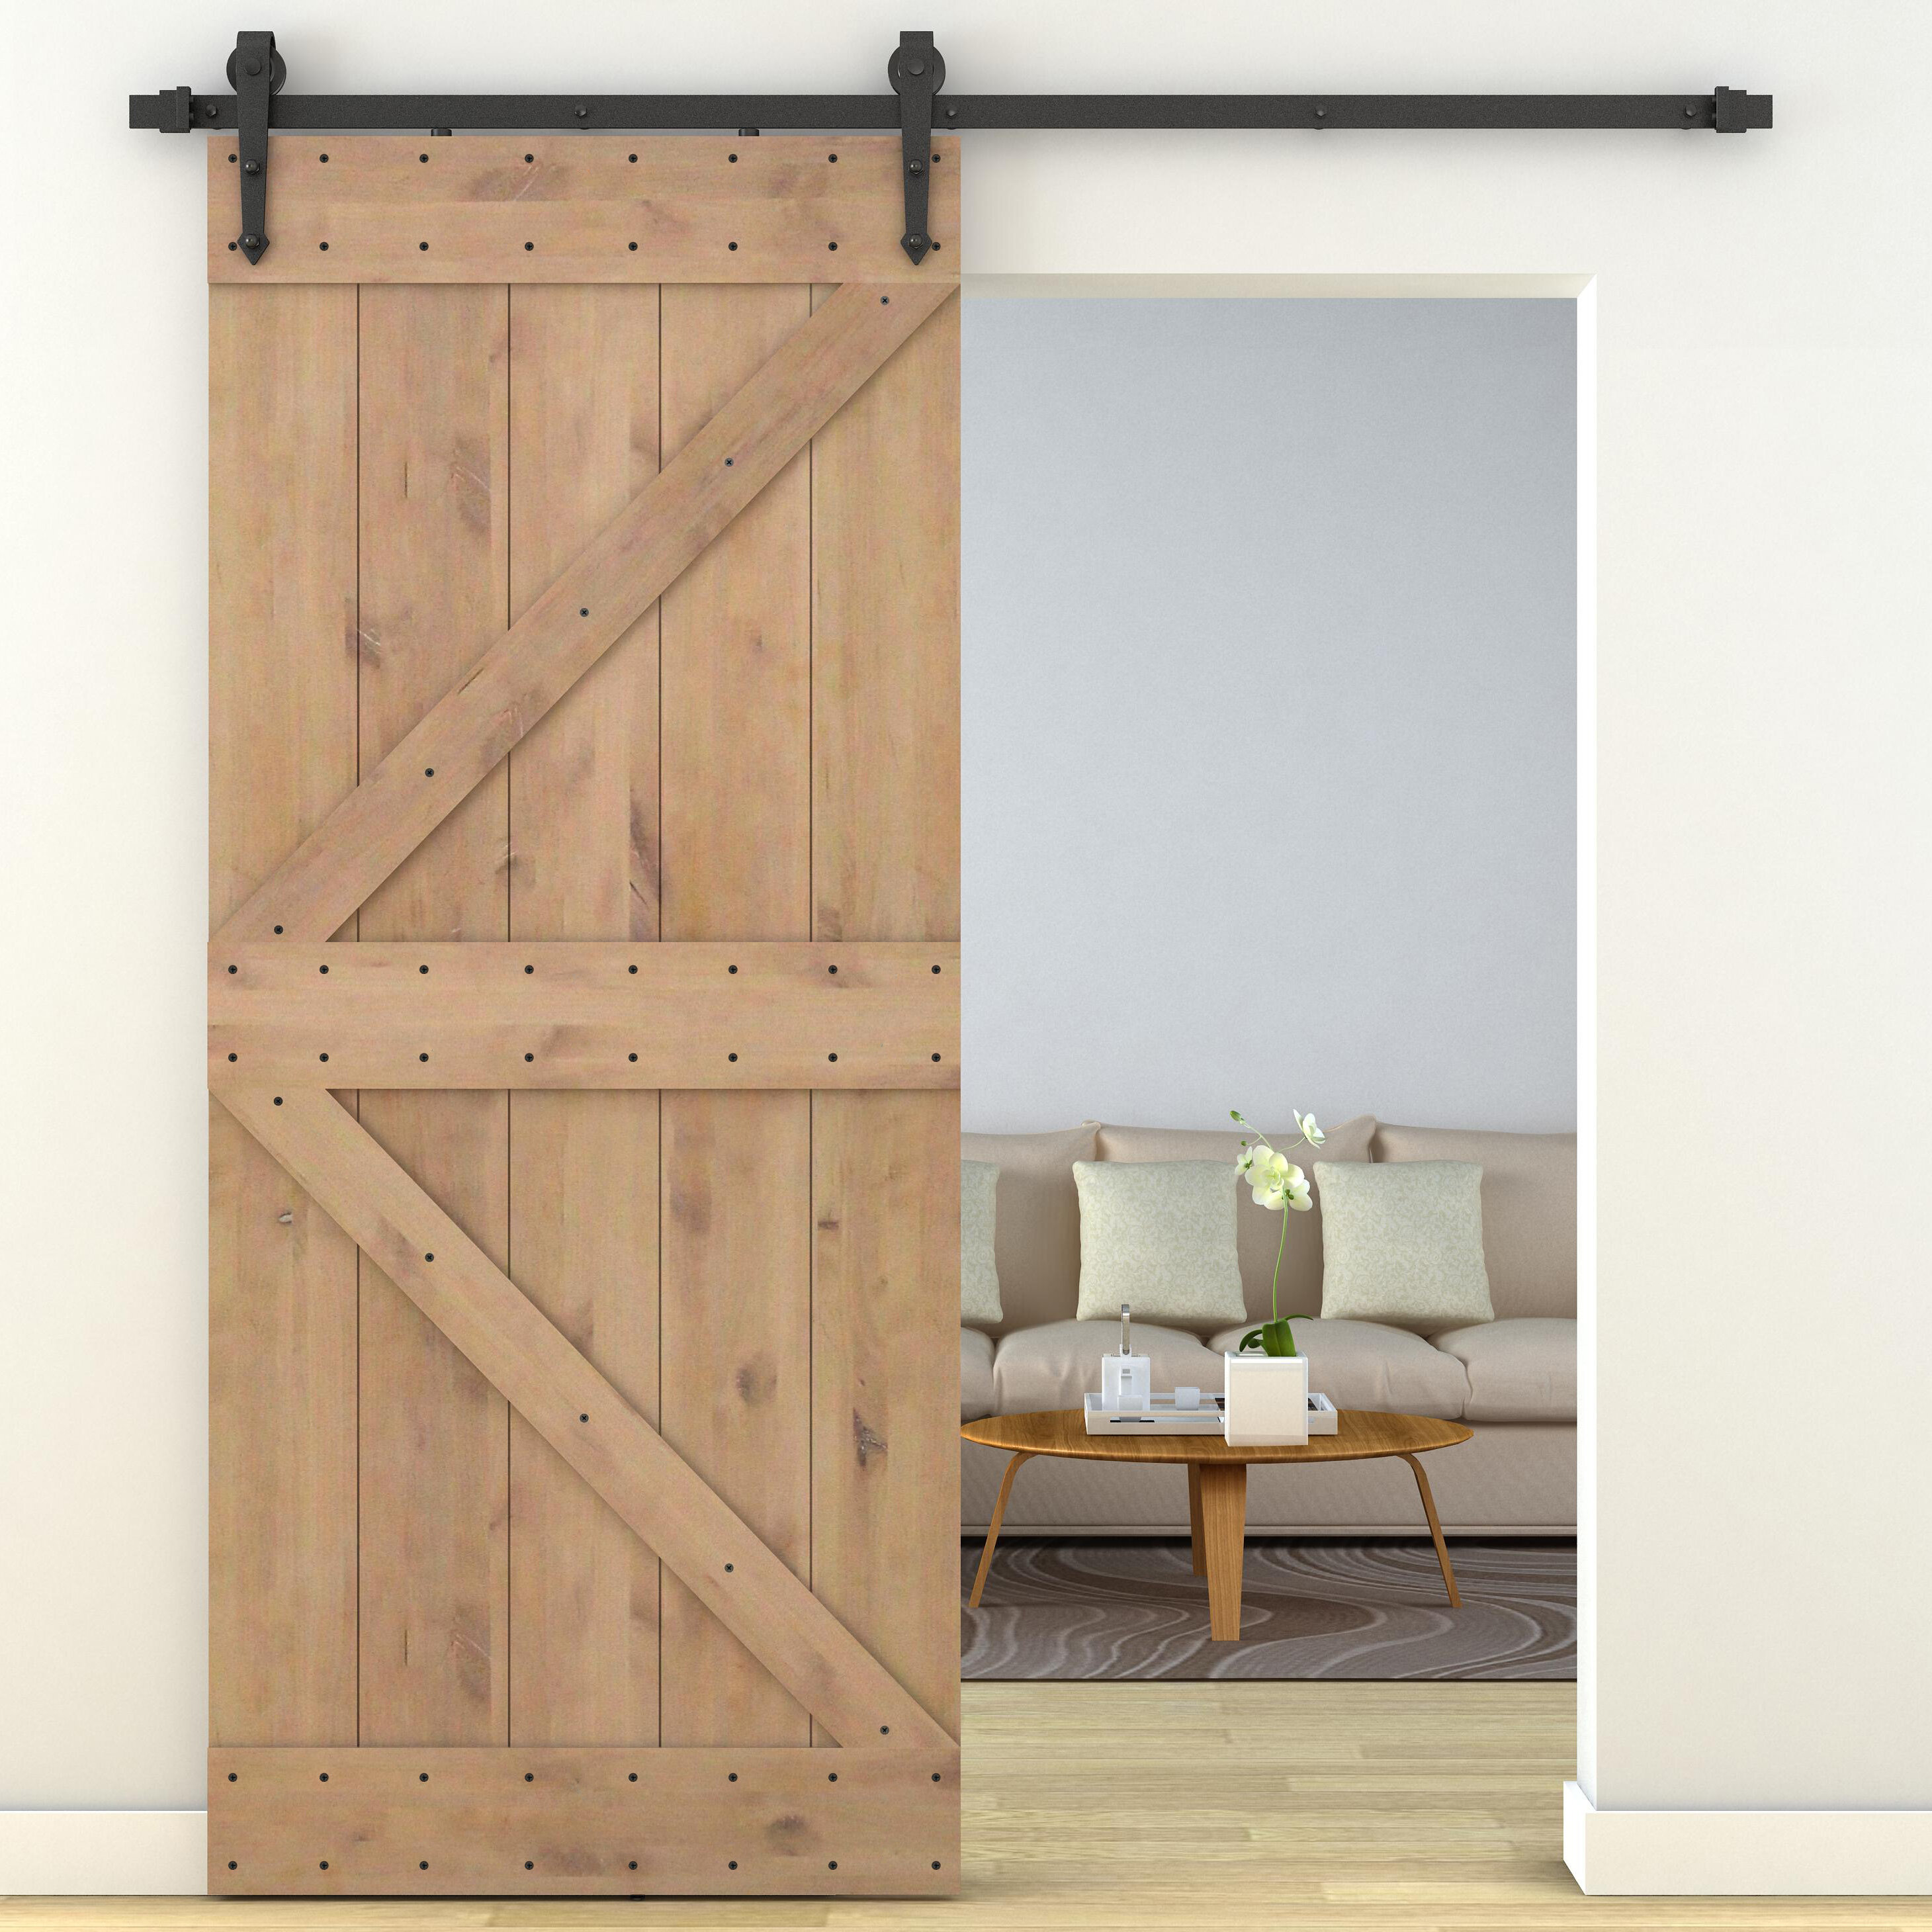 laminate barn wayfair door home interior erias continental frosted improvement ca ironage pdp reviews panel designs glass doors